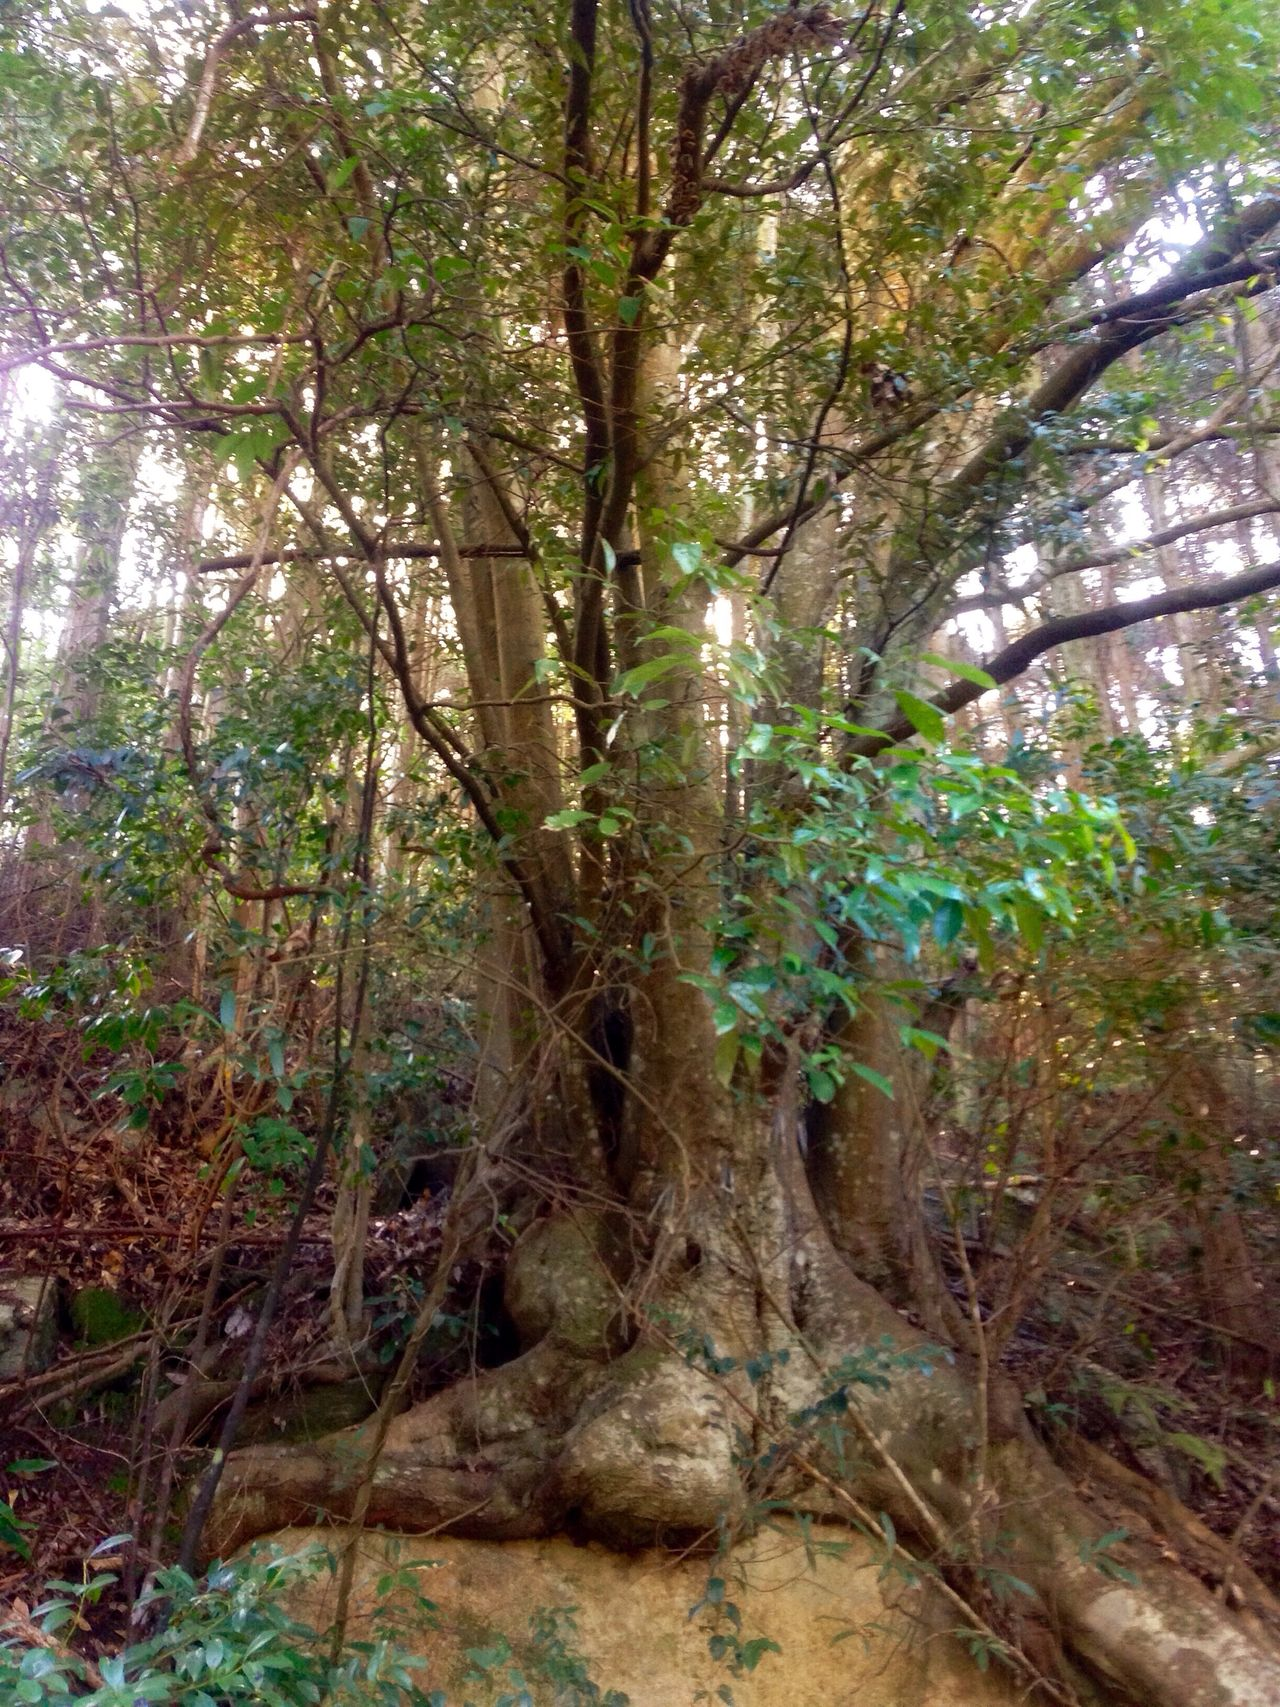 Early In The Morning Creekside Trail Mother Nature Is Amazing Tree Nature Forest Growth Tranquility Tranquil Scene Outdoors Tree Trunk Scenics Day No People Beauty In Nature Branch Close-up (null)🇯🇵 Japan